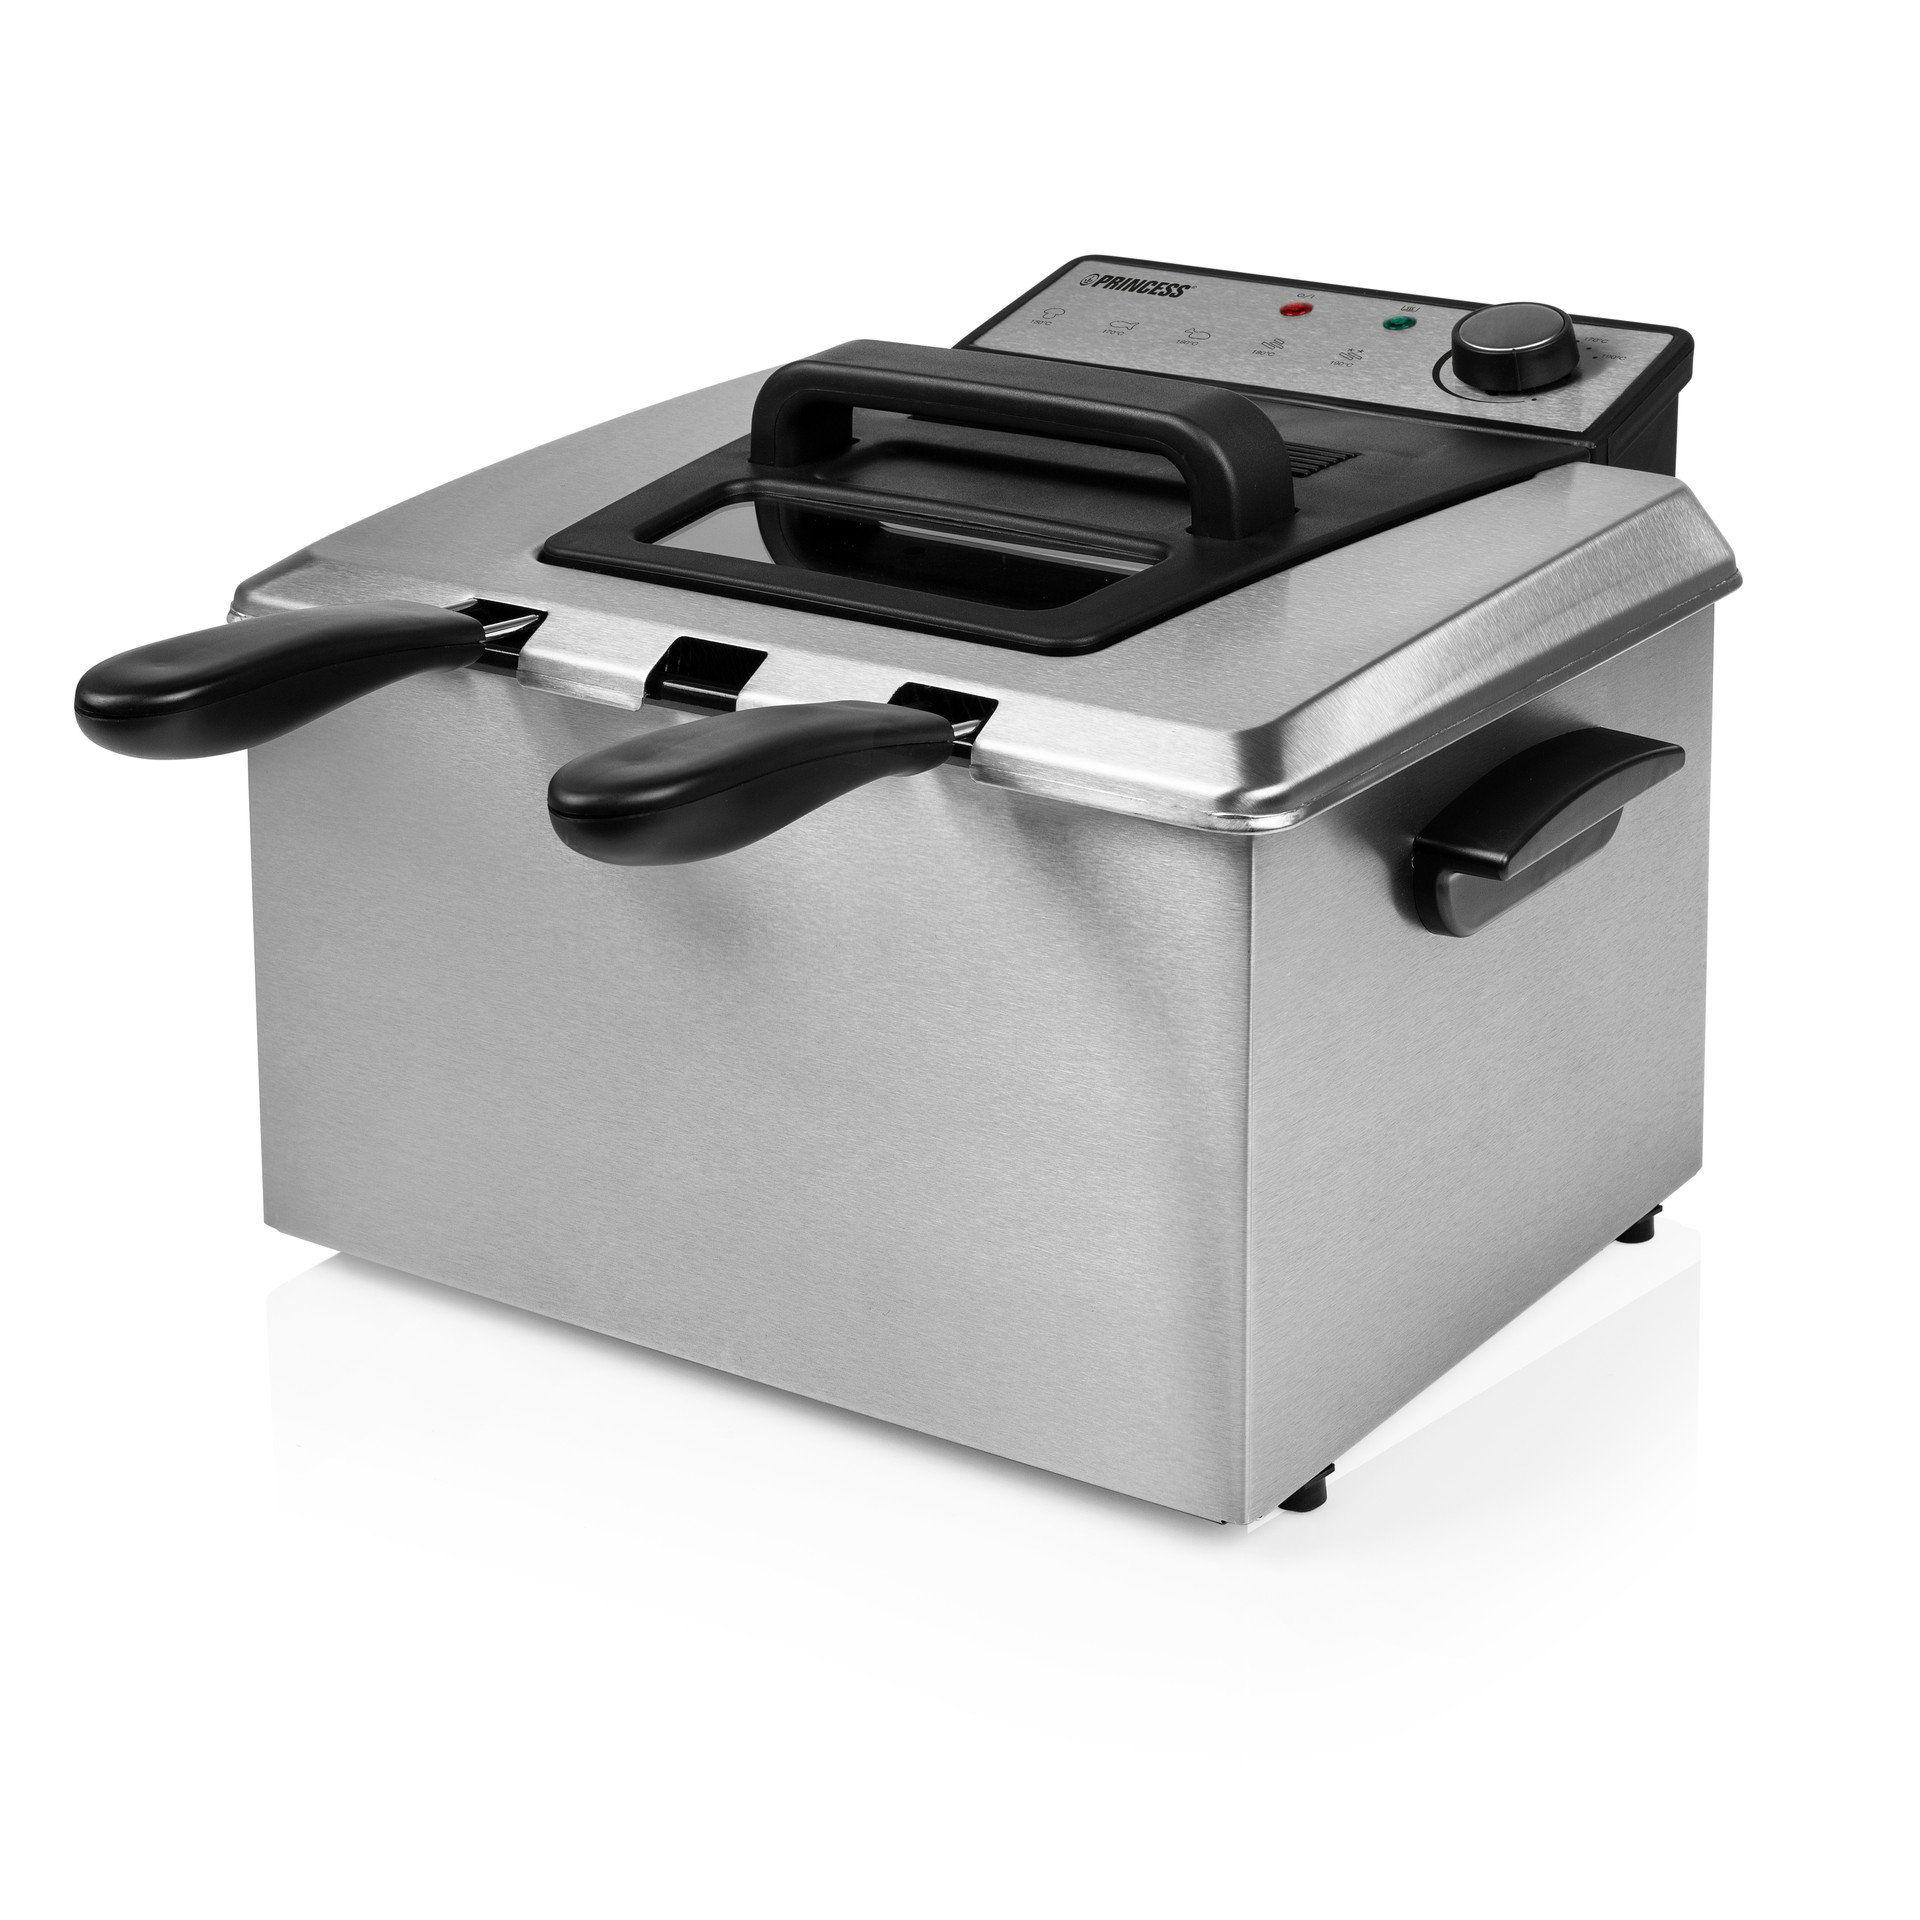 Princess 01.185000.01.001 Classic Fryer XXL 5L, 3270W - semi-professional